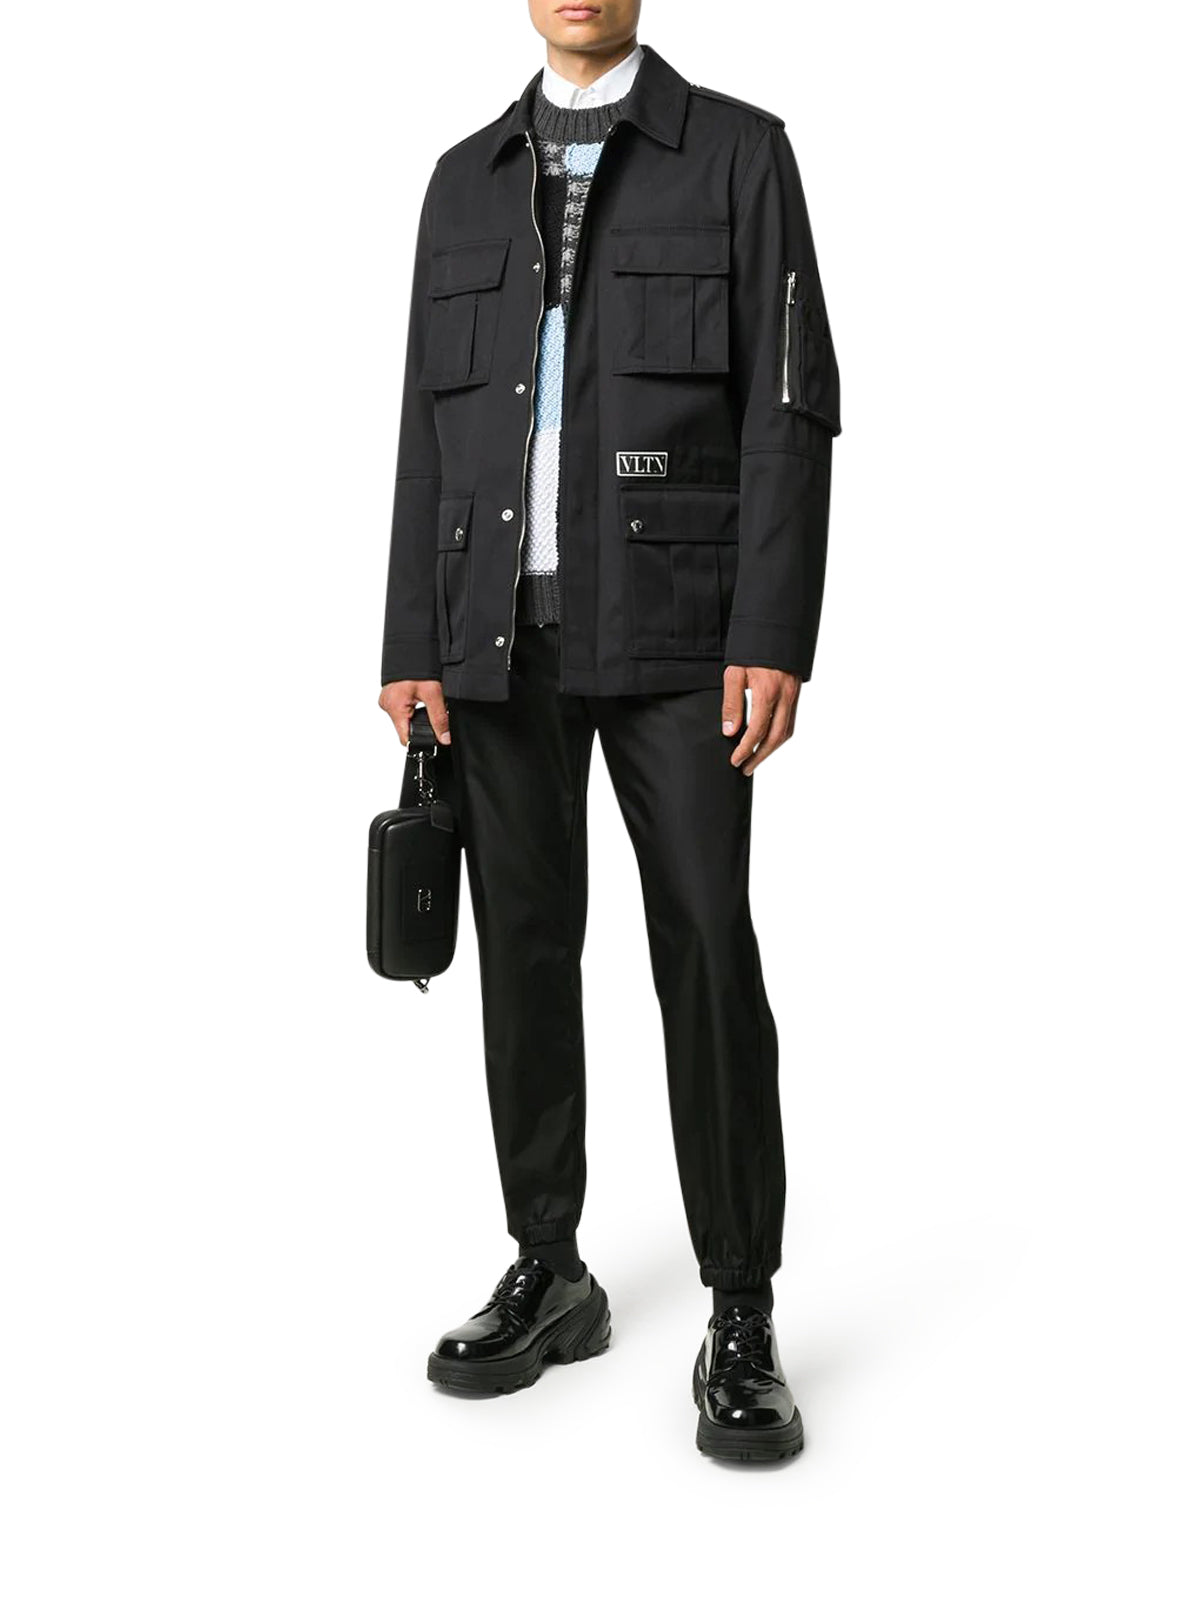 VLTN-patch shirt jacket